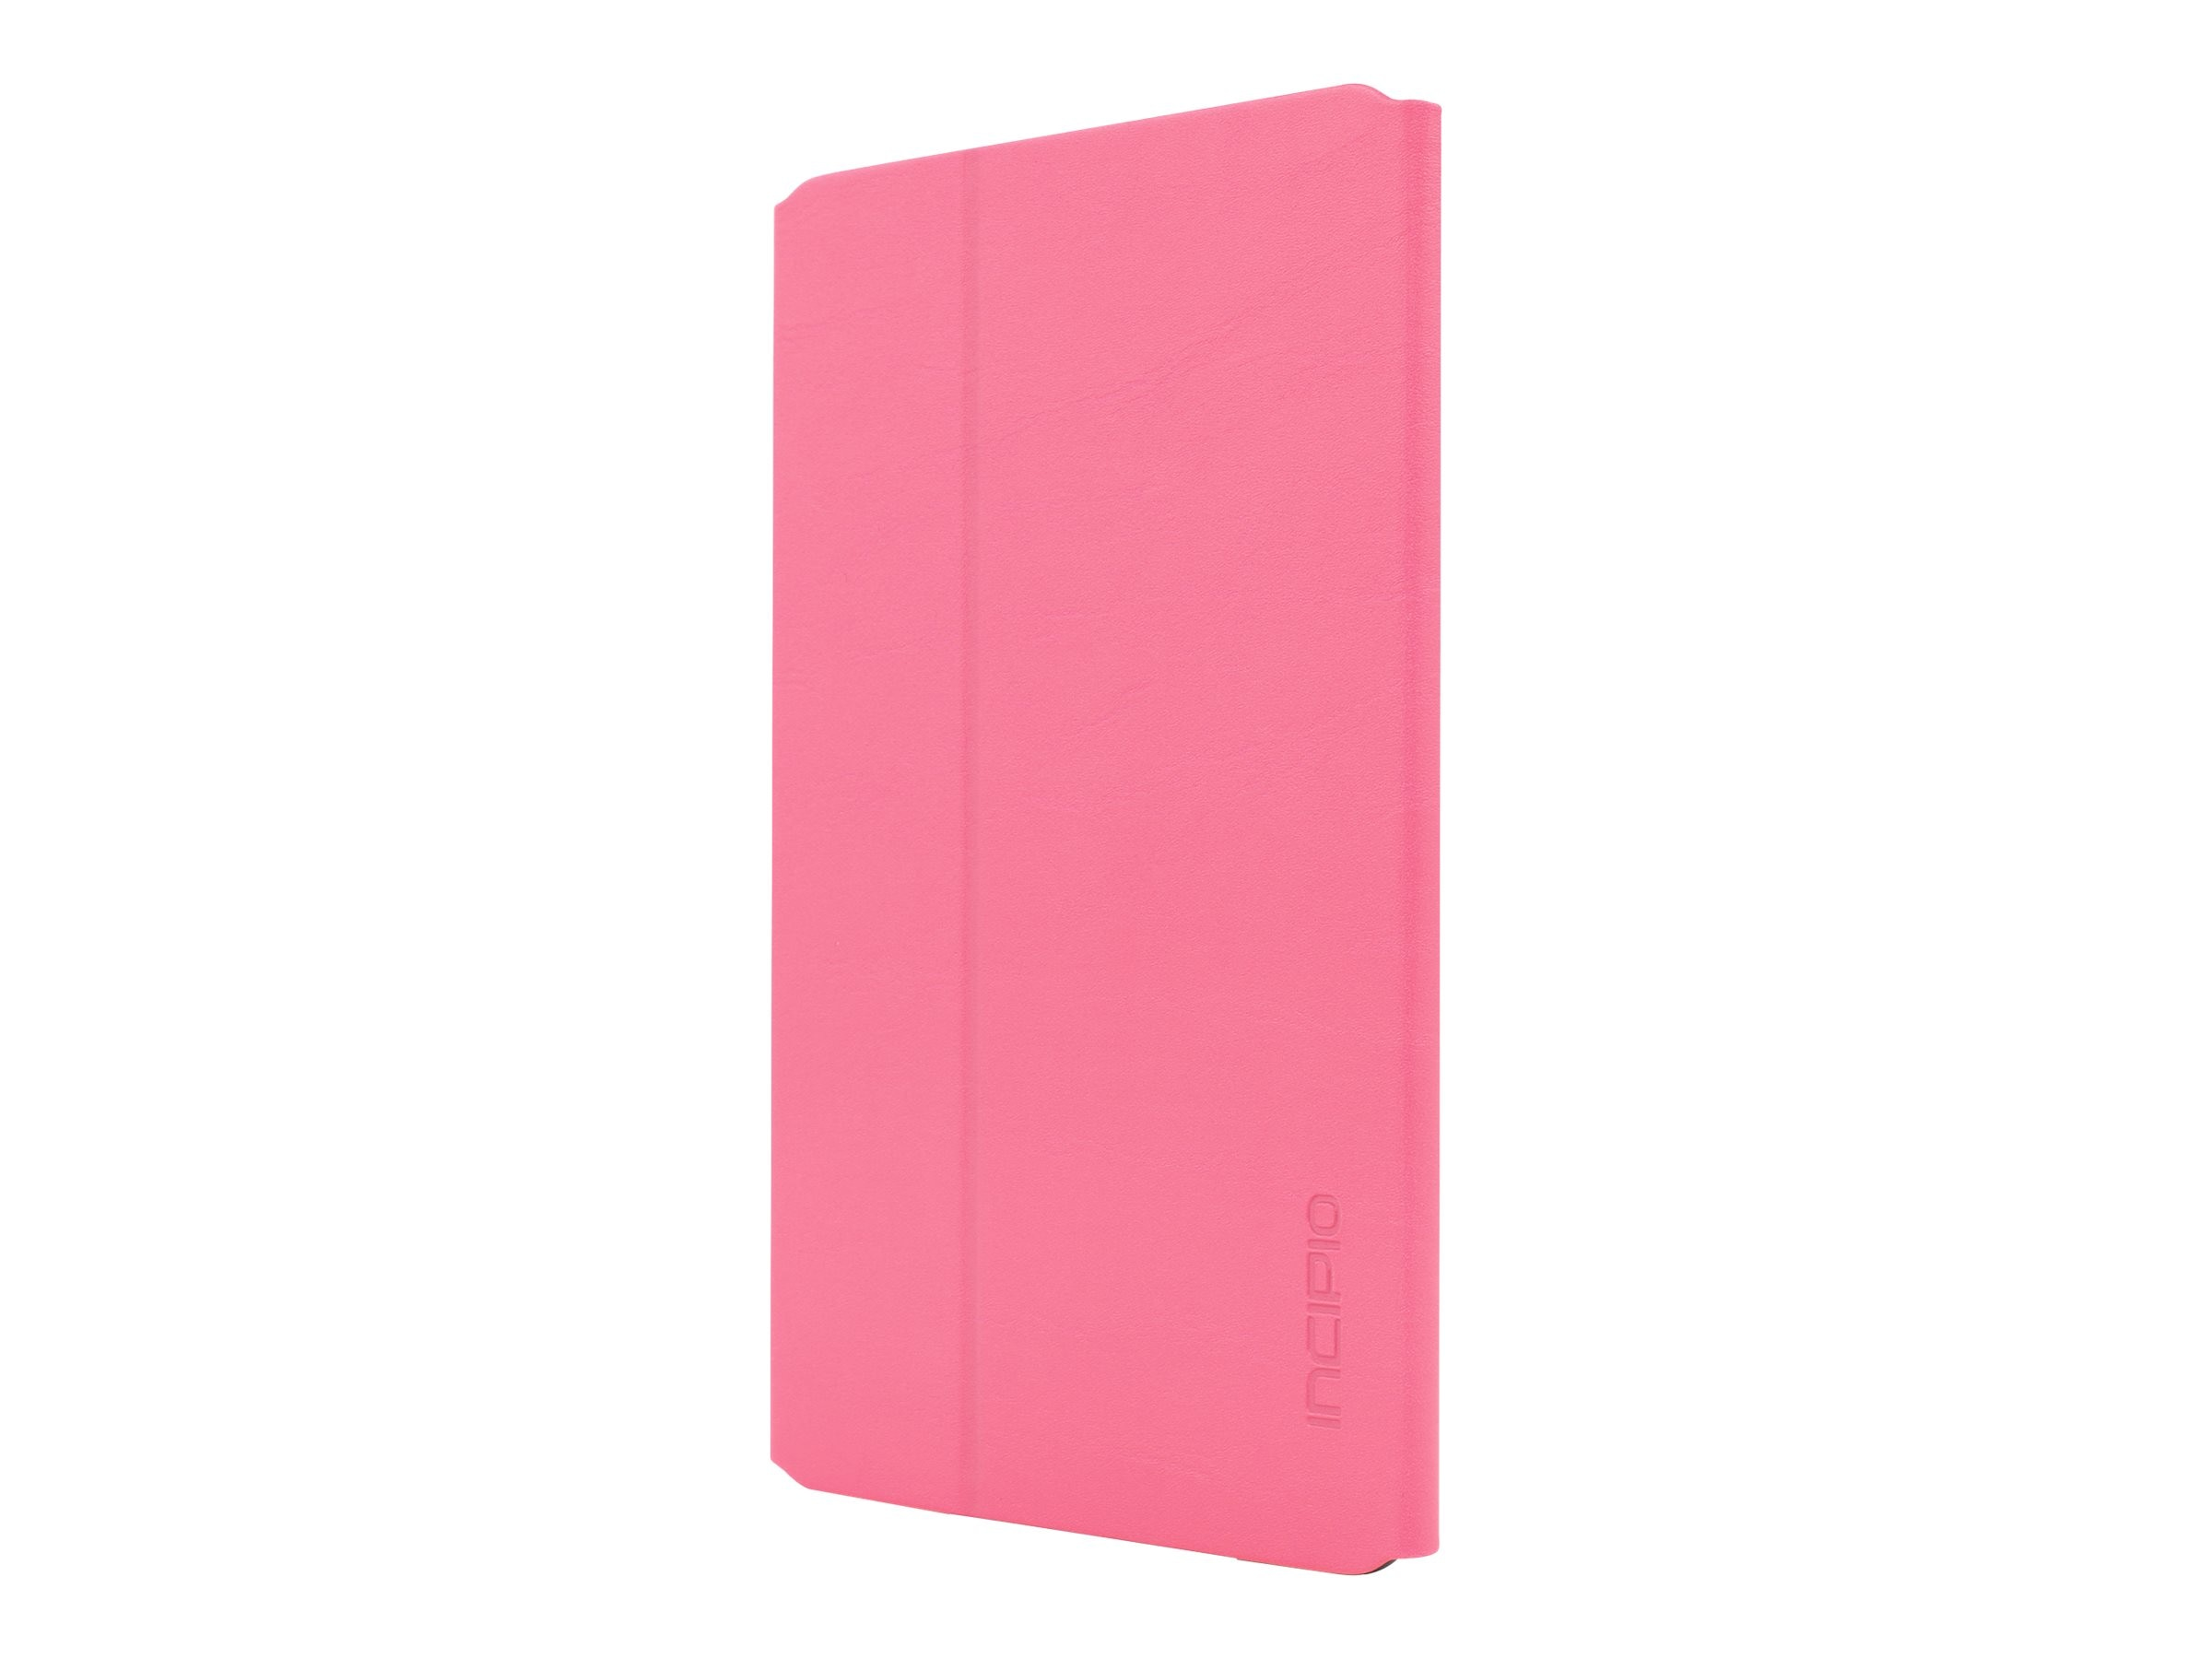 Incipio Faraday Folio Case w  Magnetic Fold-over Closure for iPad mini 4, Pink